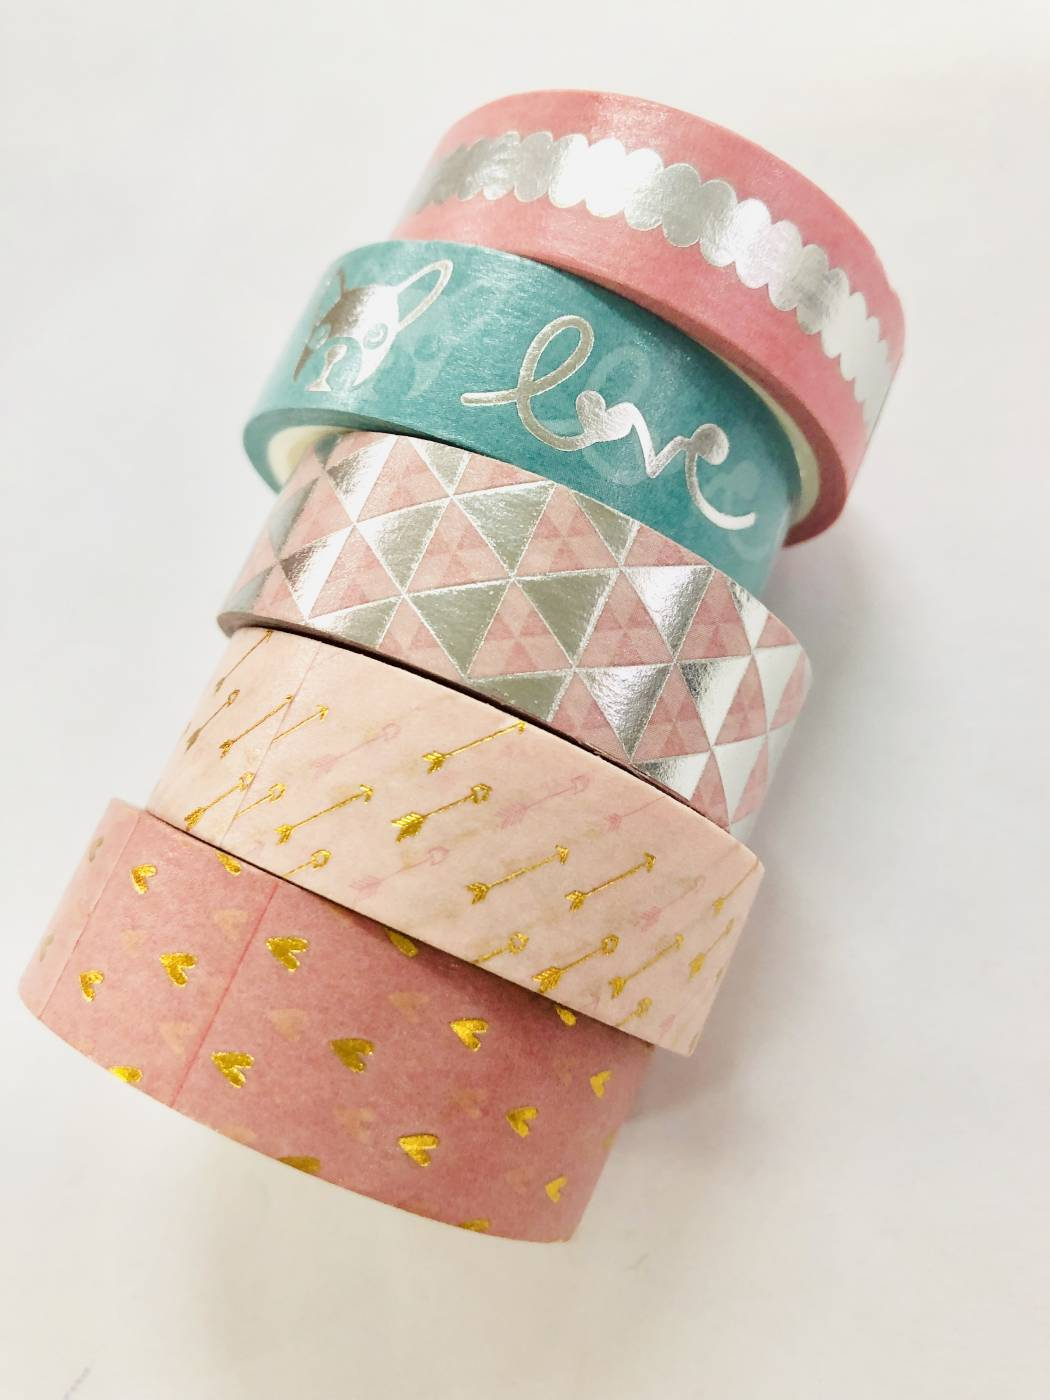 Washi Tape Foil Rosa Buldogue 5 un